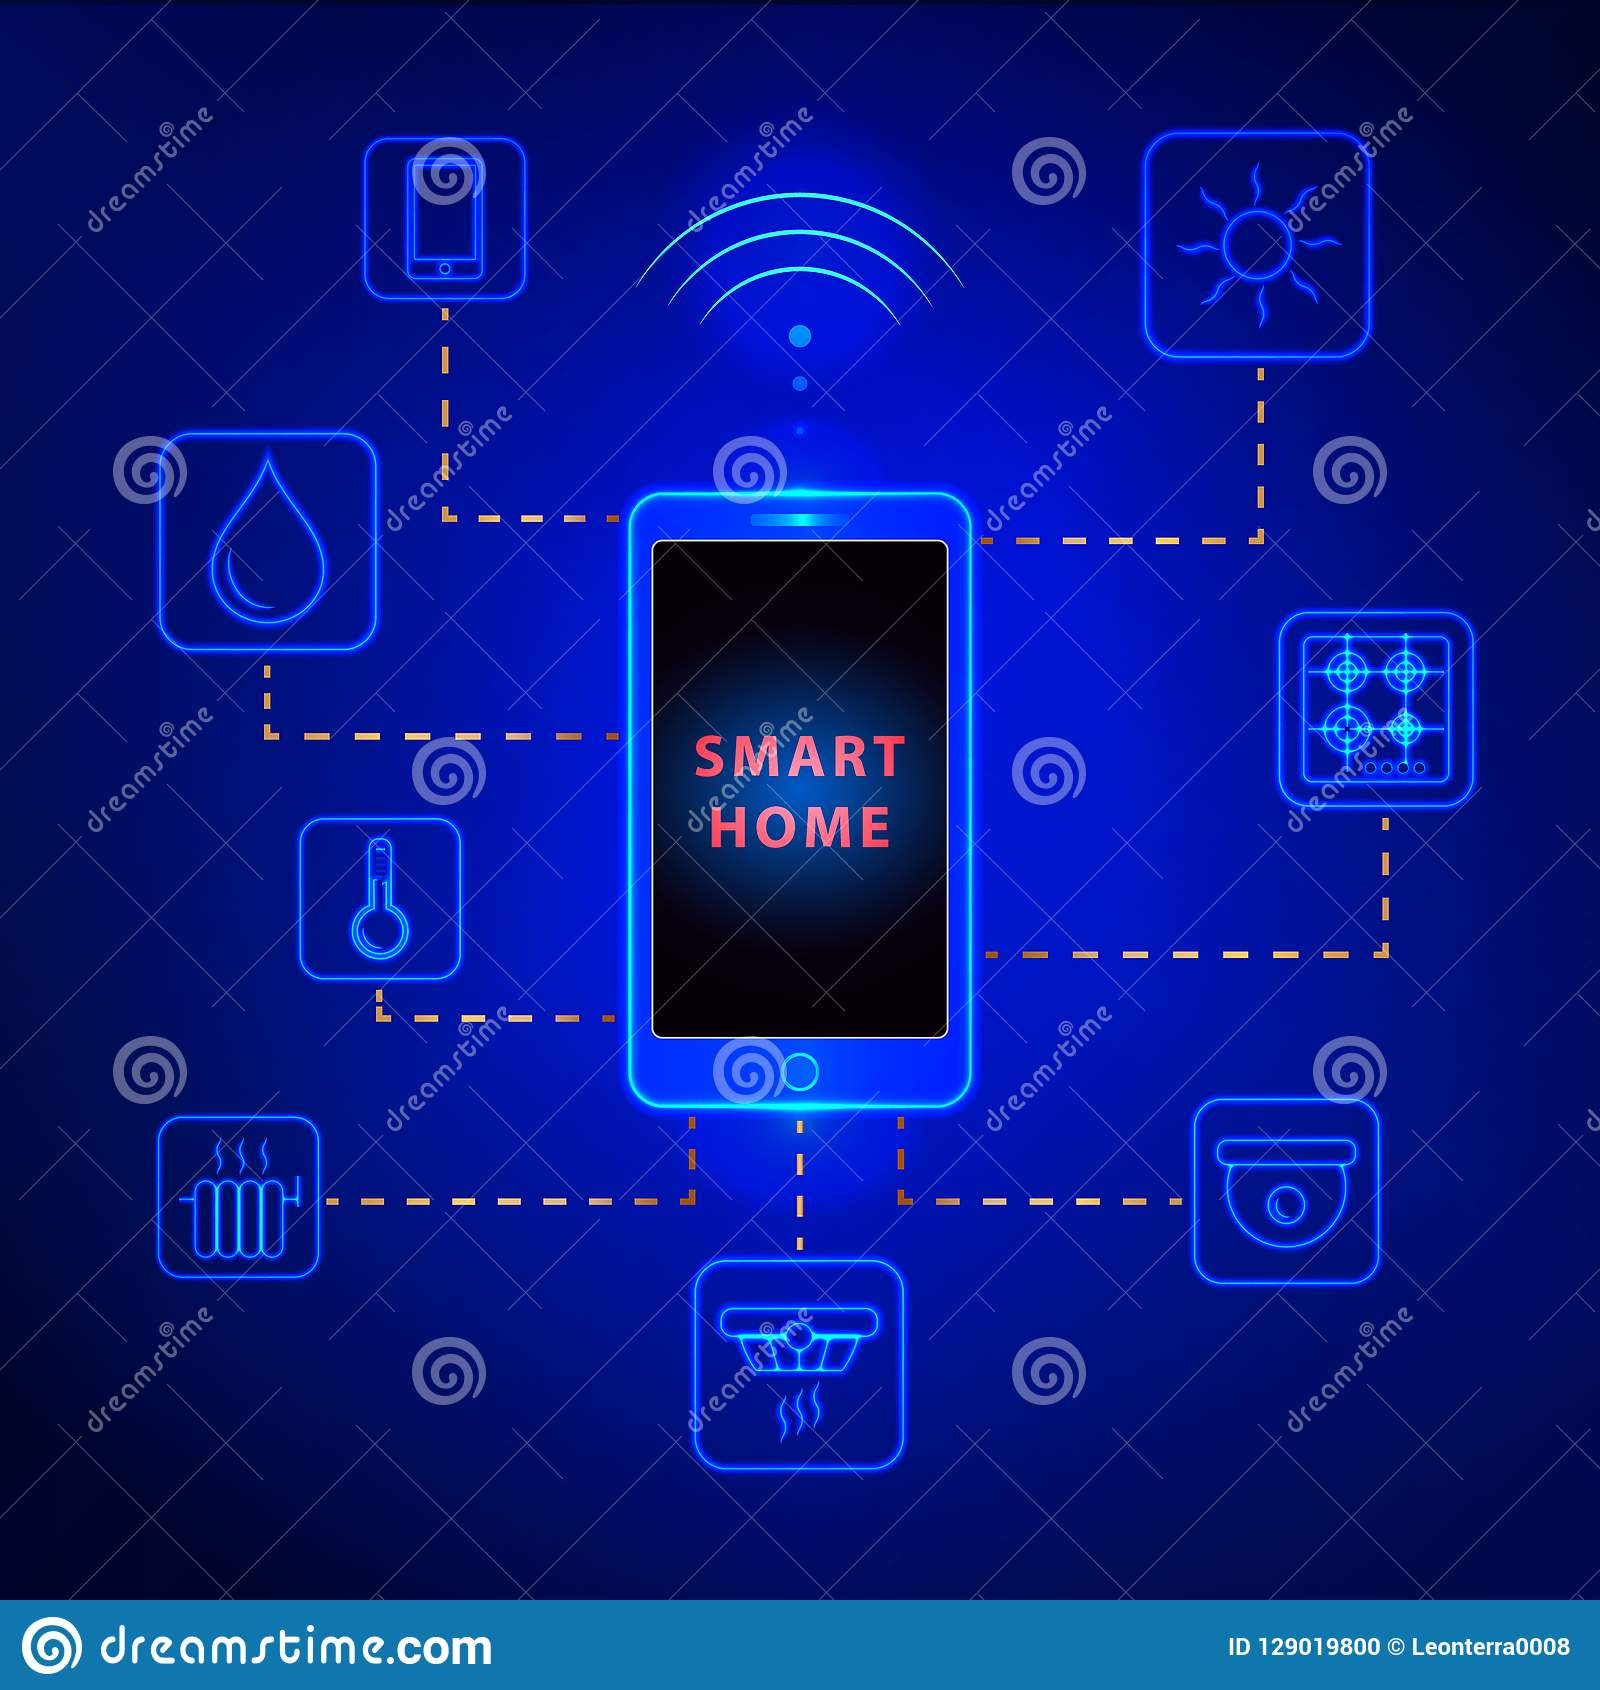 Smart home controlled smartphone. Internet technology of home automation system.